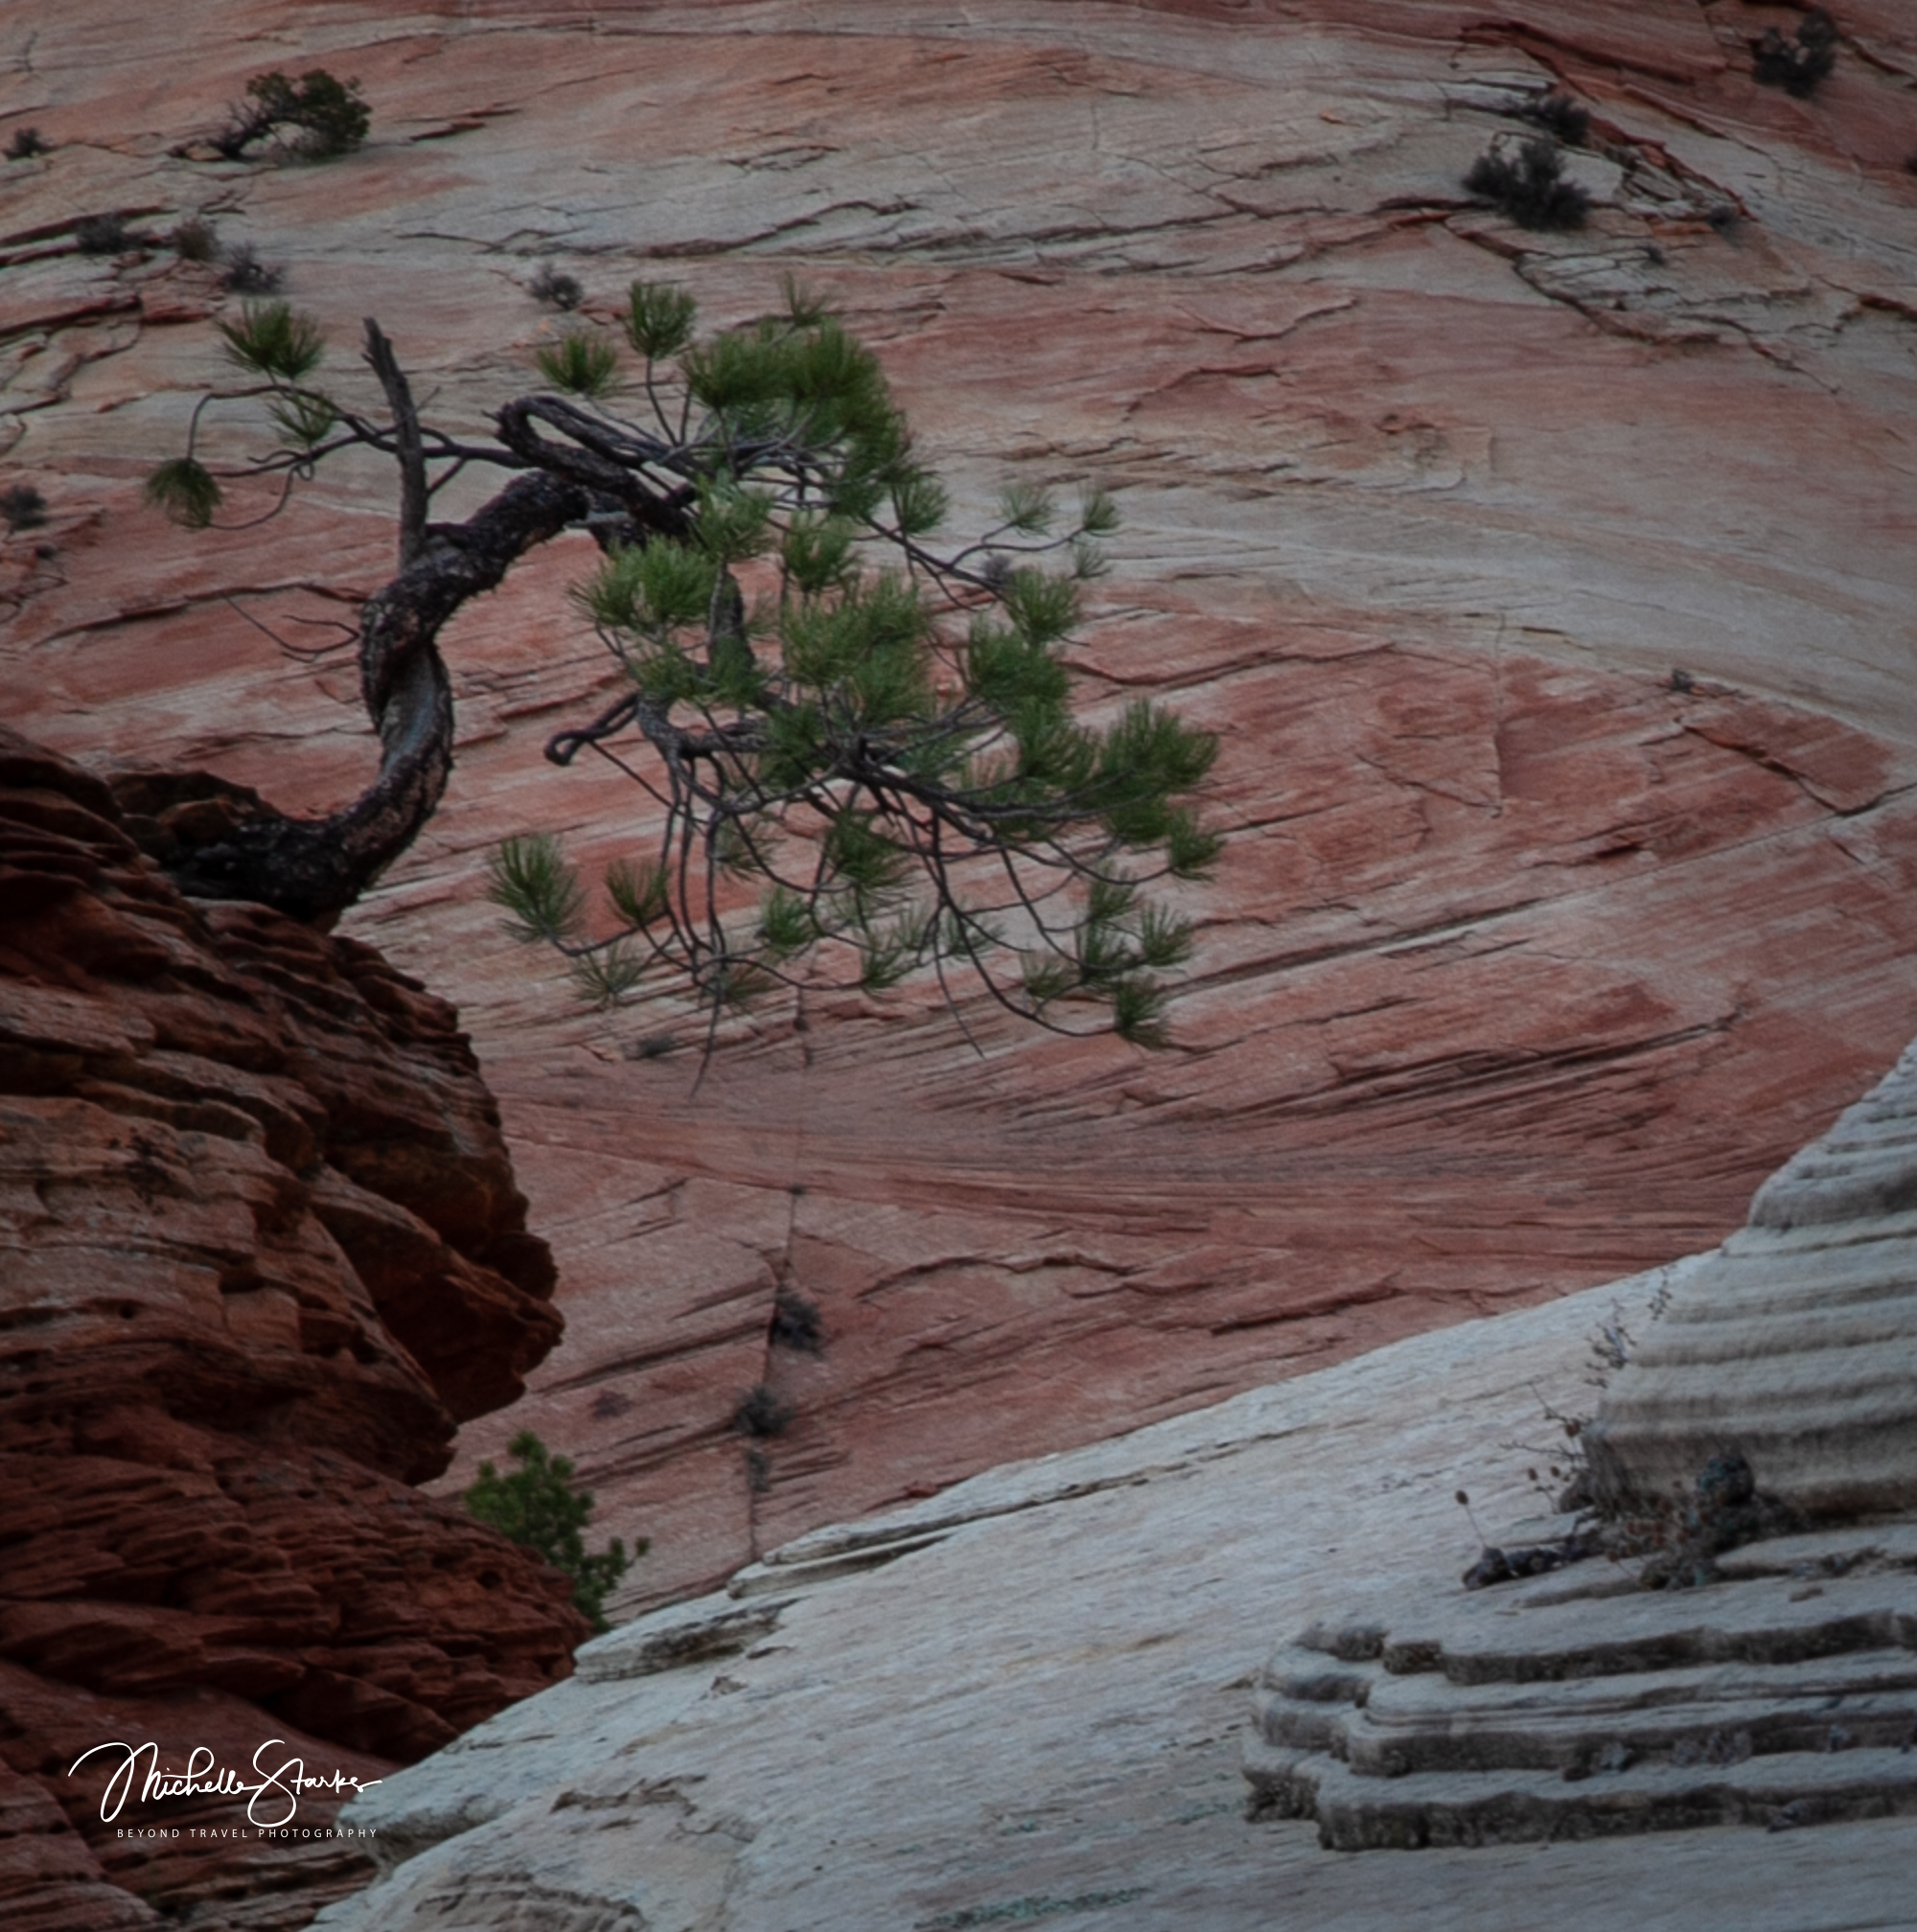 Little Tree, Zion National Park, Springdale, UT